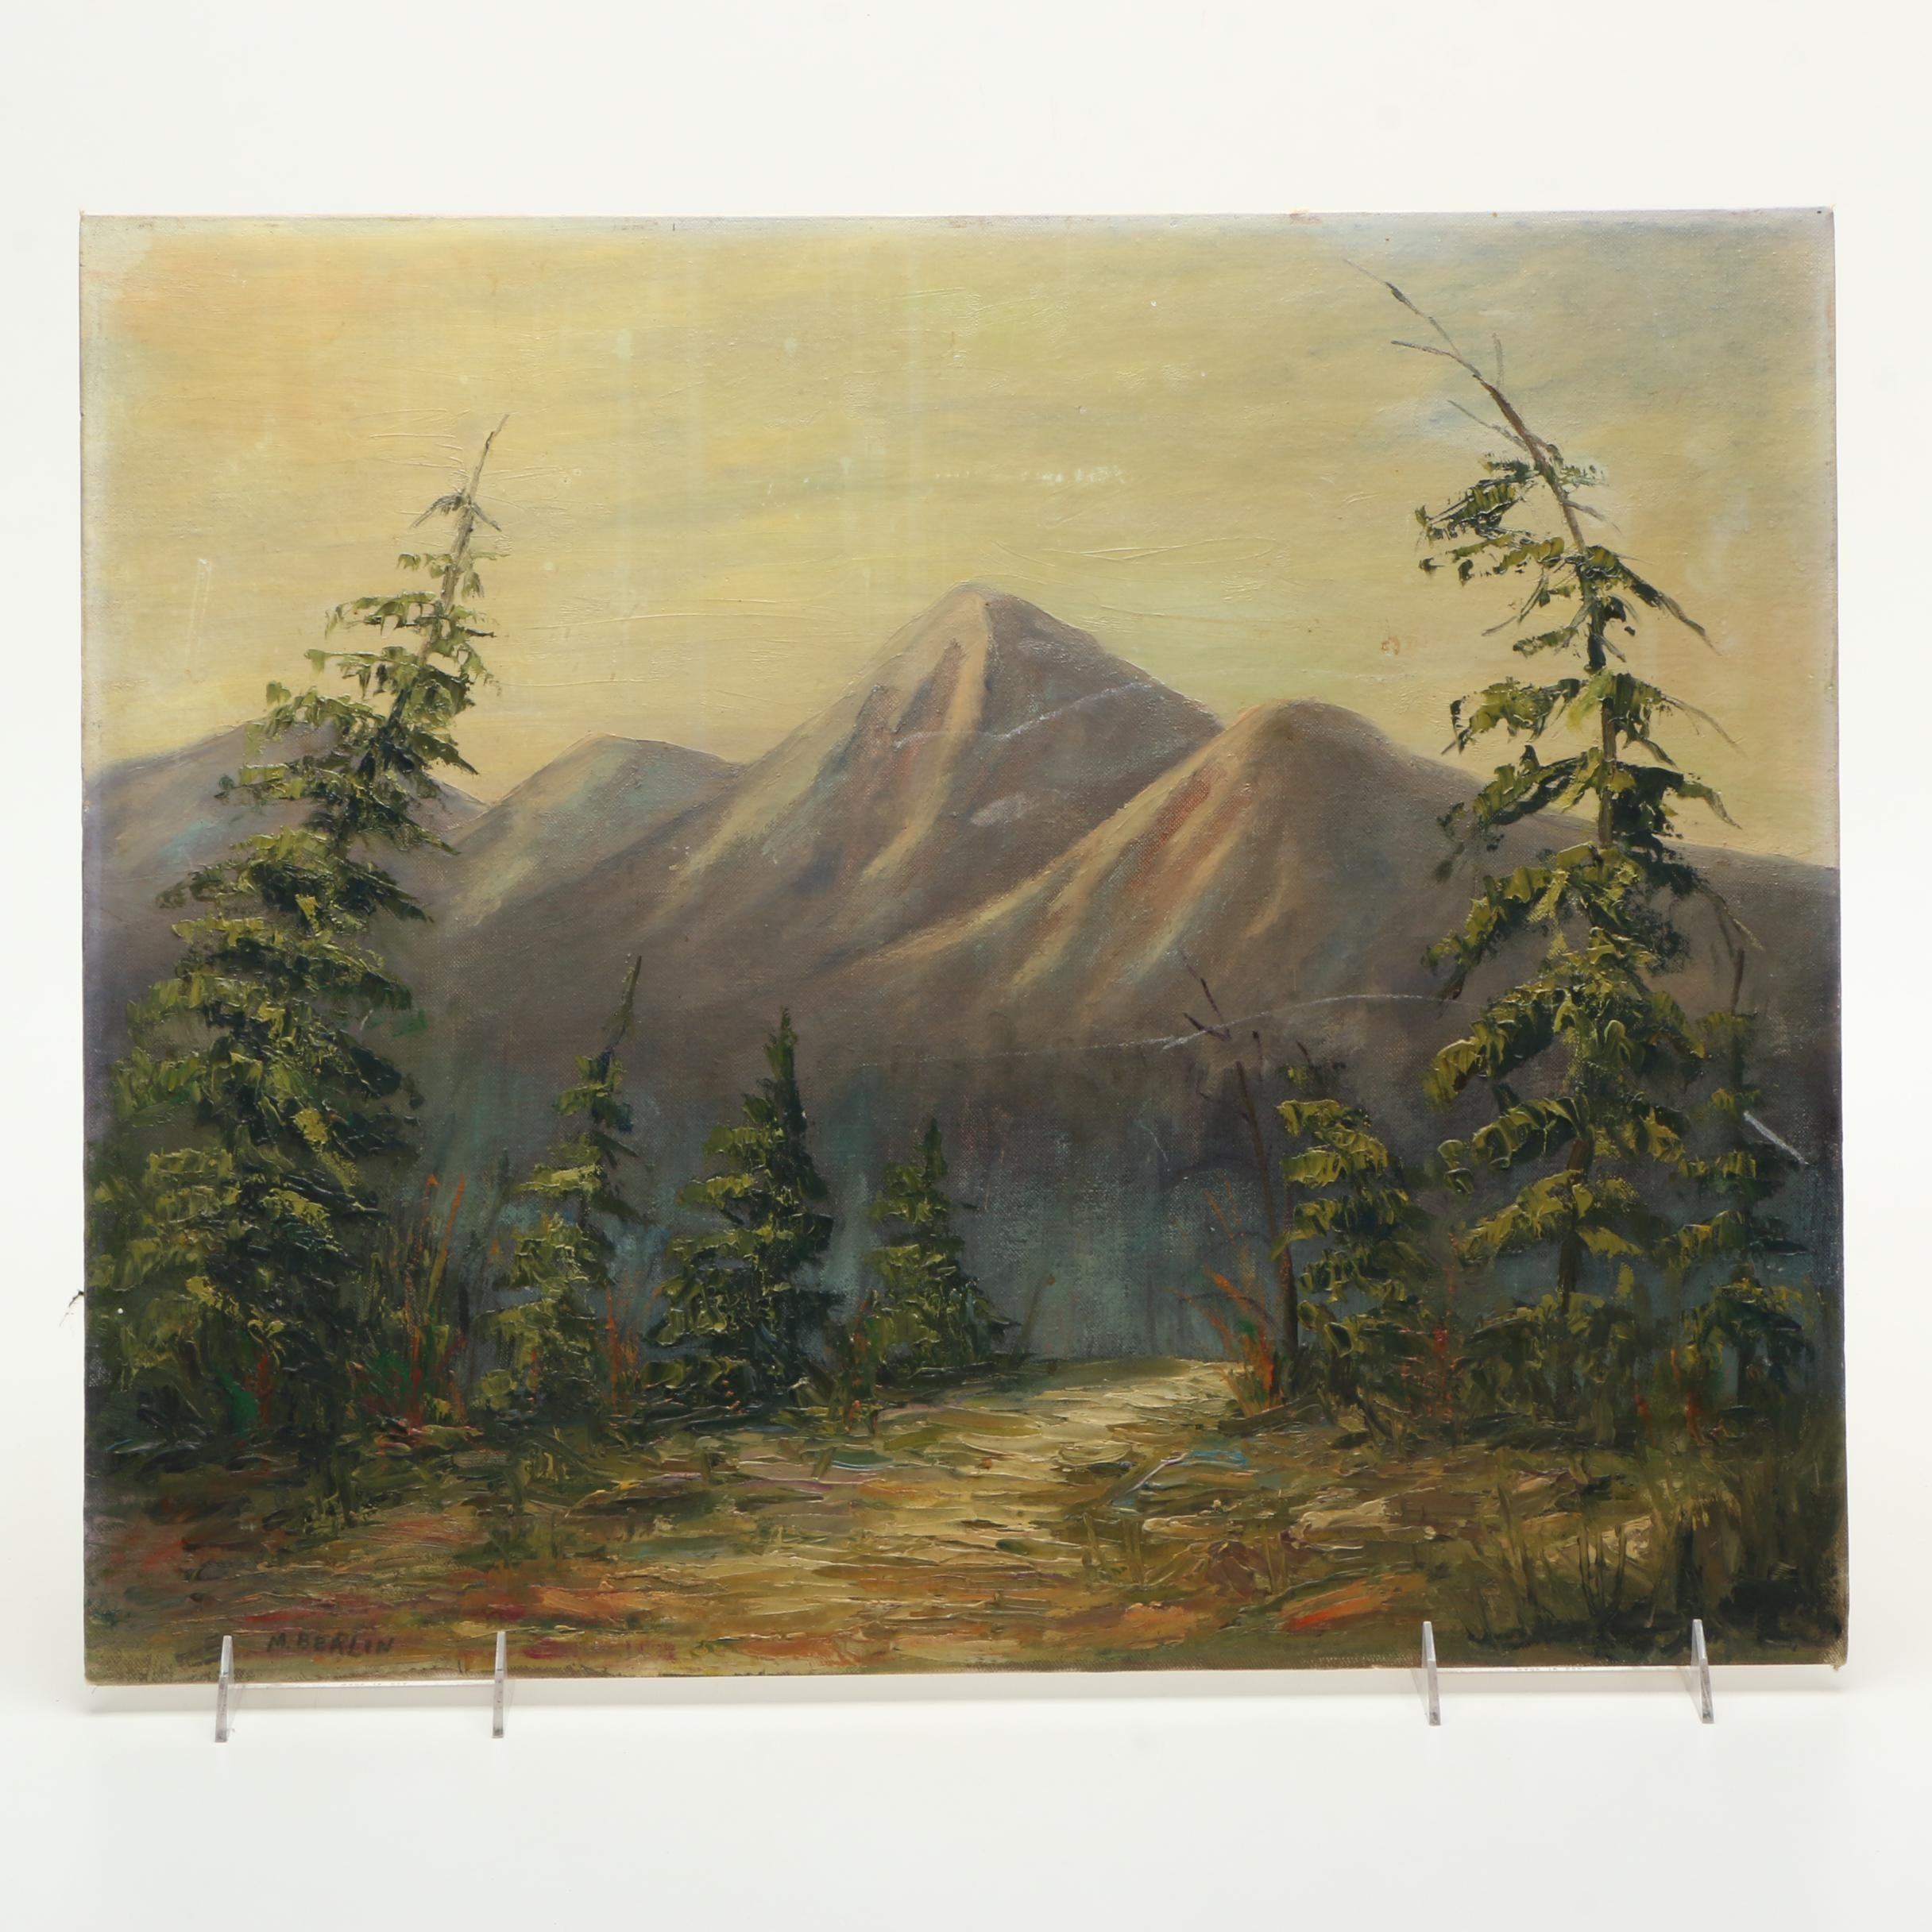 Martha Berlin Oil Painting on Canvas of a Mountain Landscape